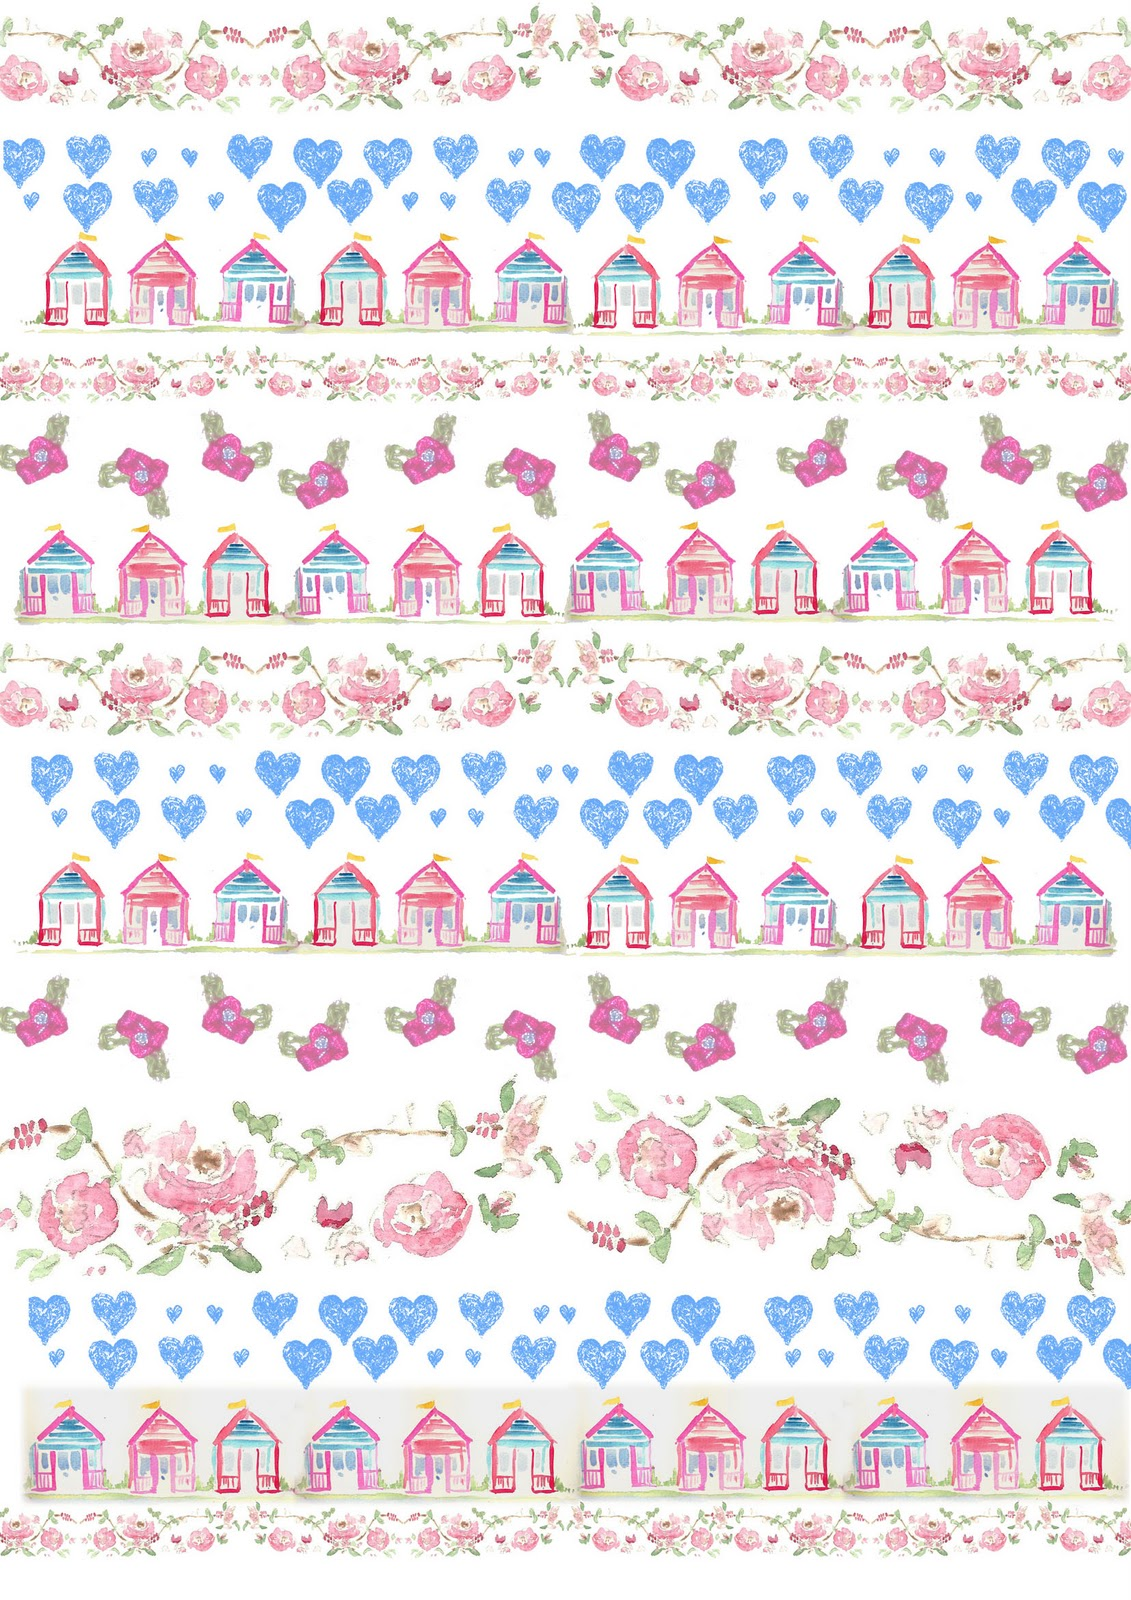 http://1.bp.blogspot.com/-BemDJ5rVPRs/TVaqdf7e3ZI/AAAAAAAAACo/wkYzqoqOUps/s1600/beach+hut+wallpaper+with+hearts1flattened.jpg